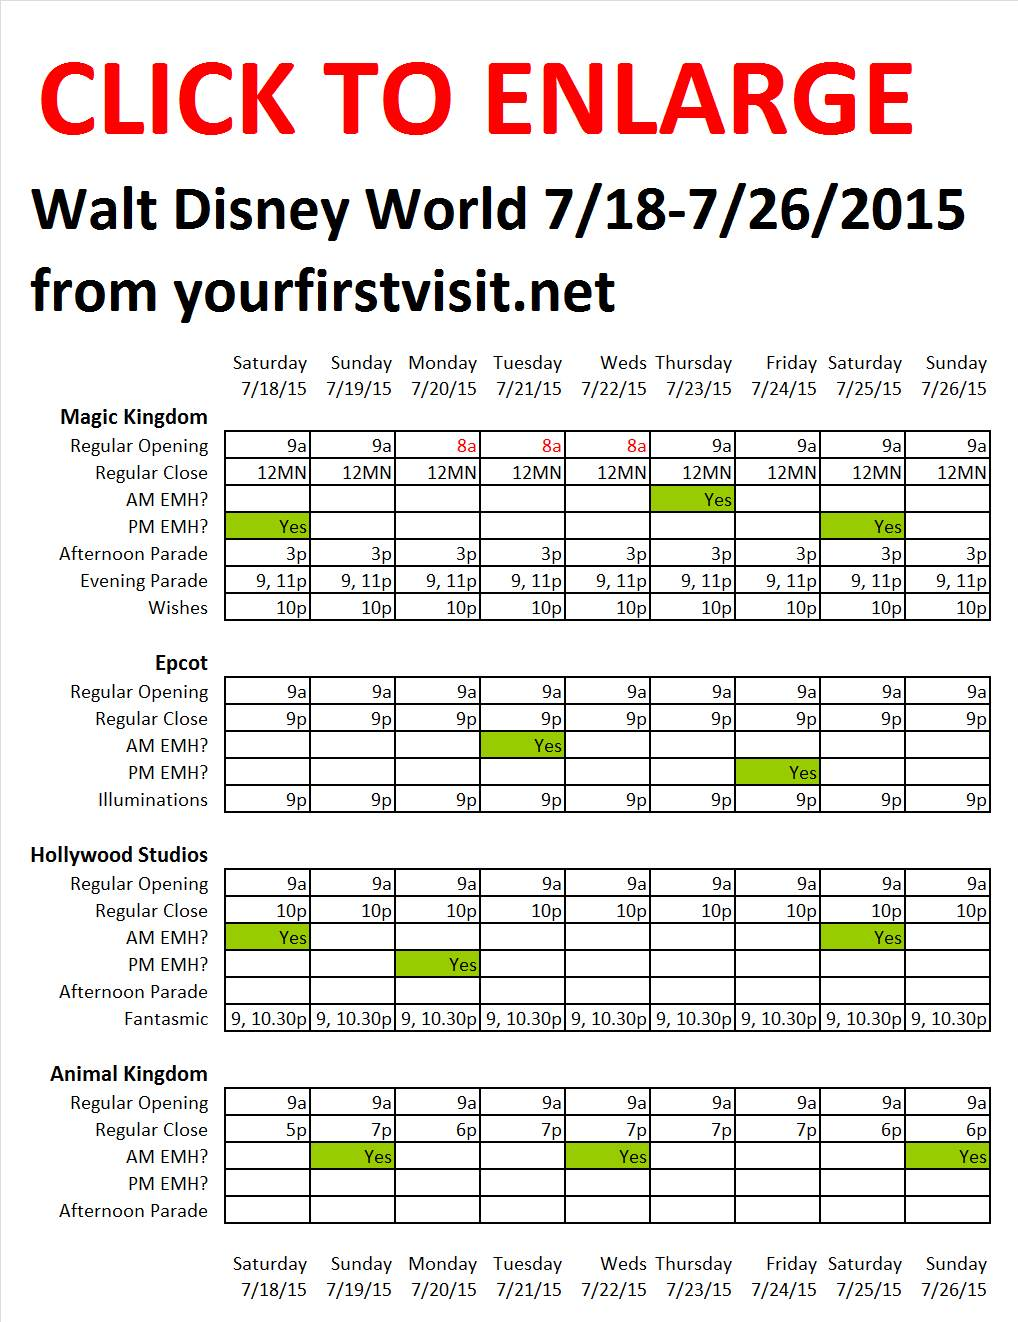 Disney World 7-18 to 7-26-2015 from yourfirstvisit.net